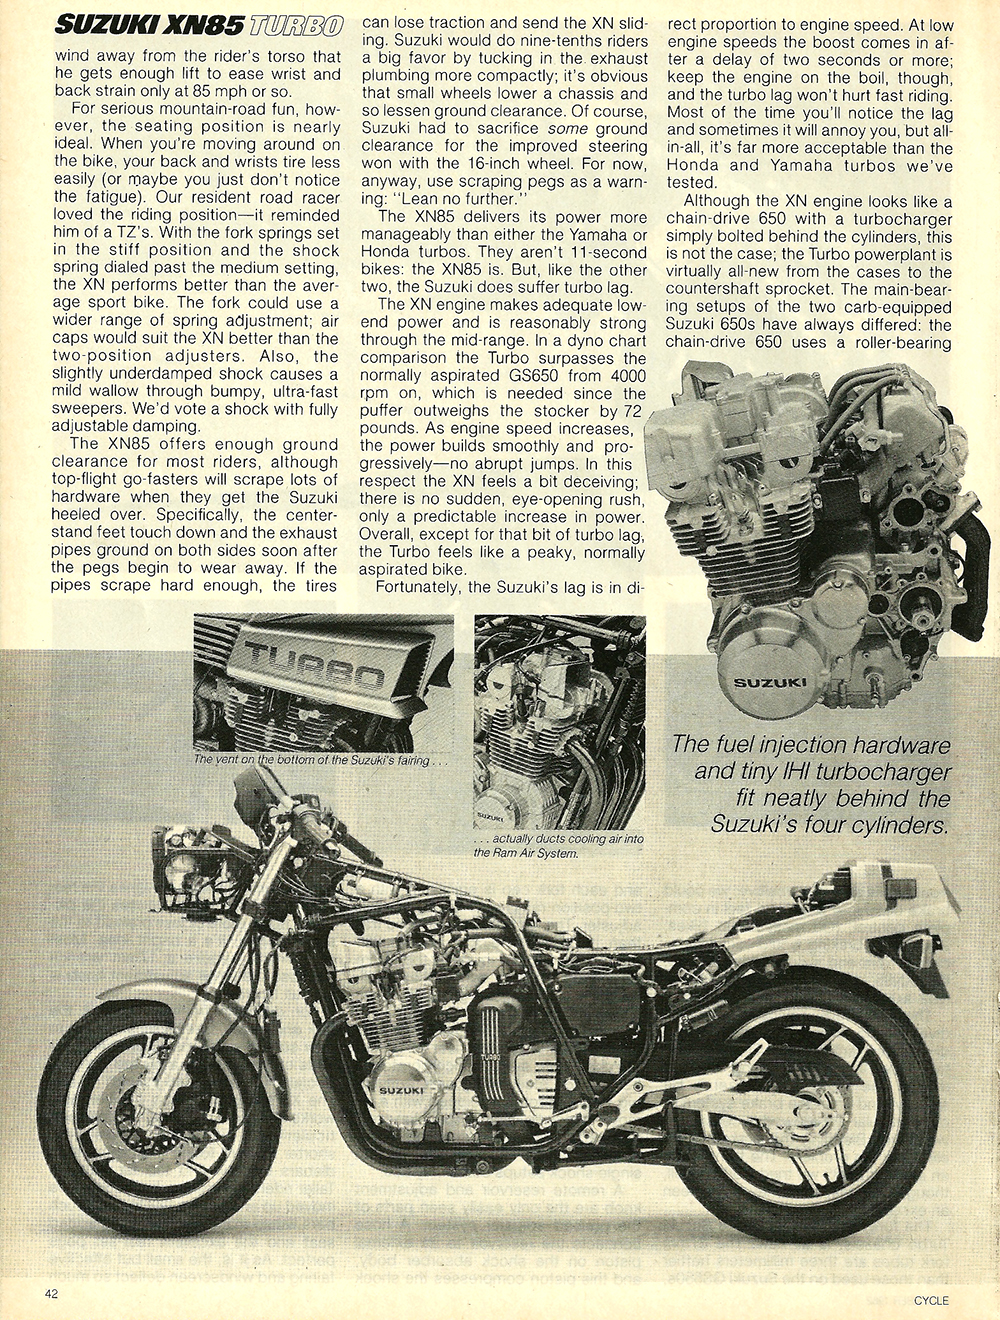 1983 Suzuki XN85 Turbo road test 5.jpg